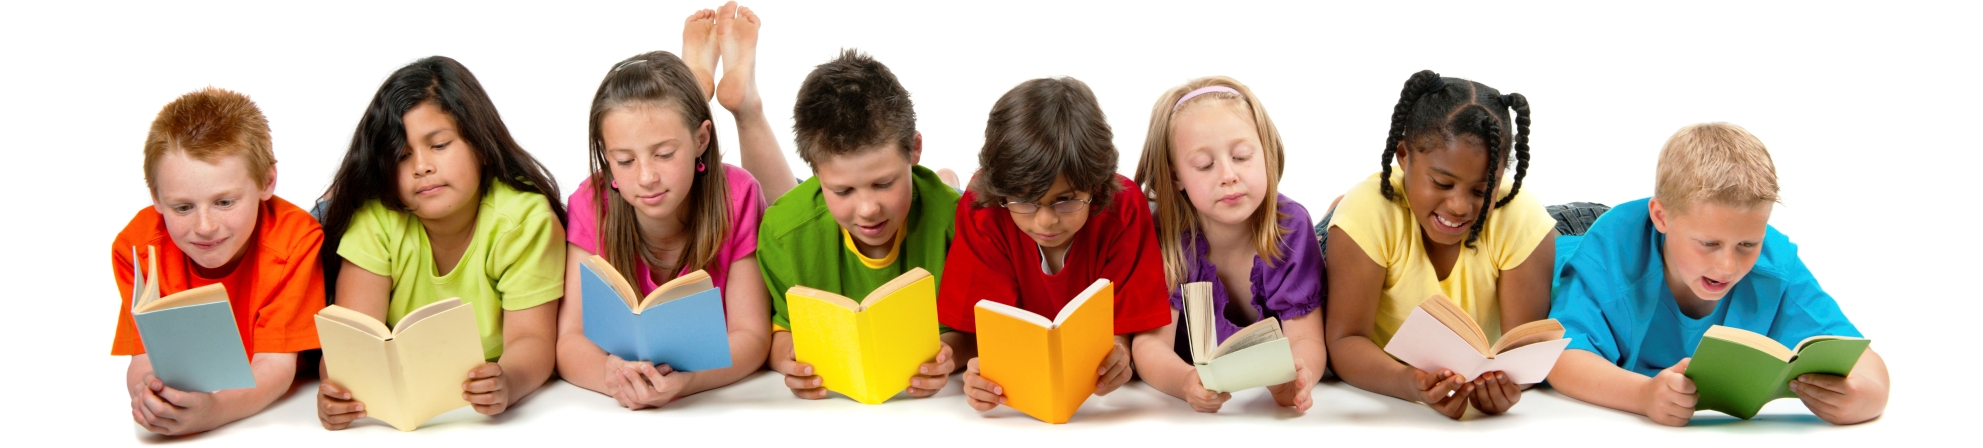 Children Reading.